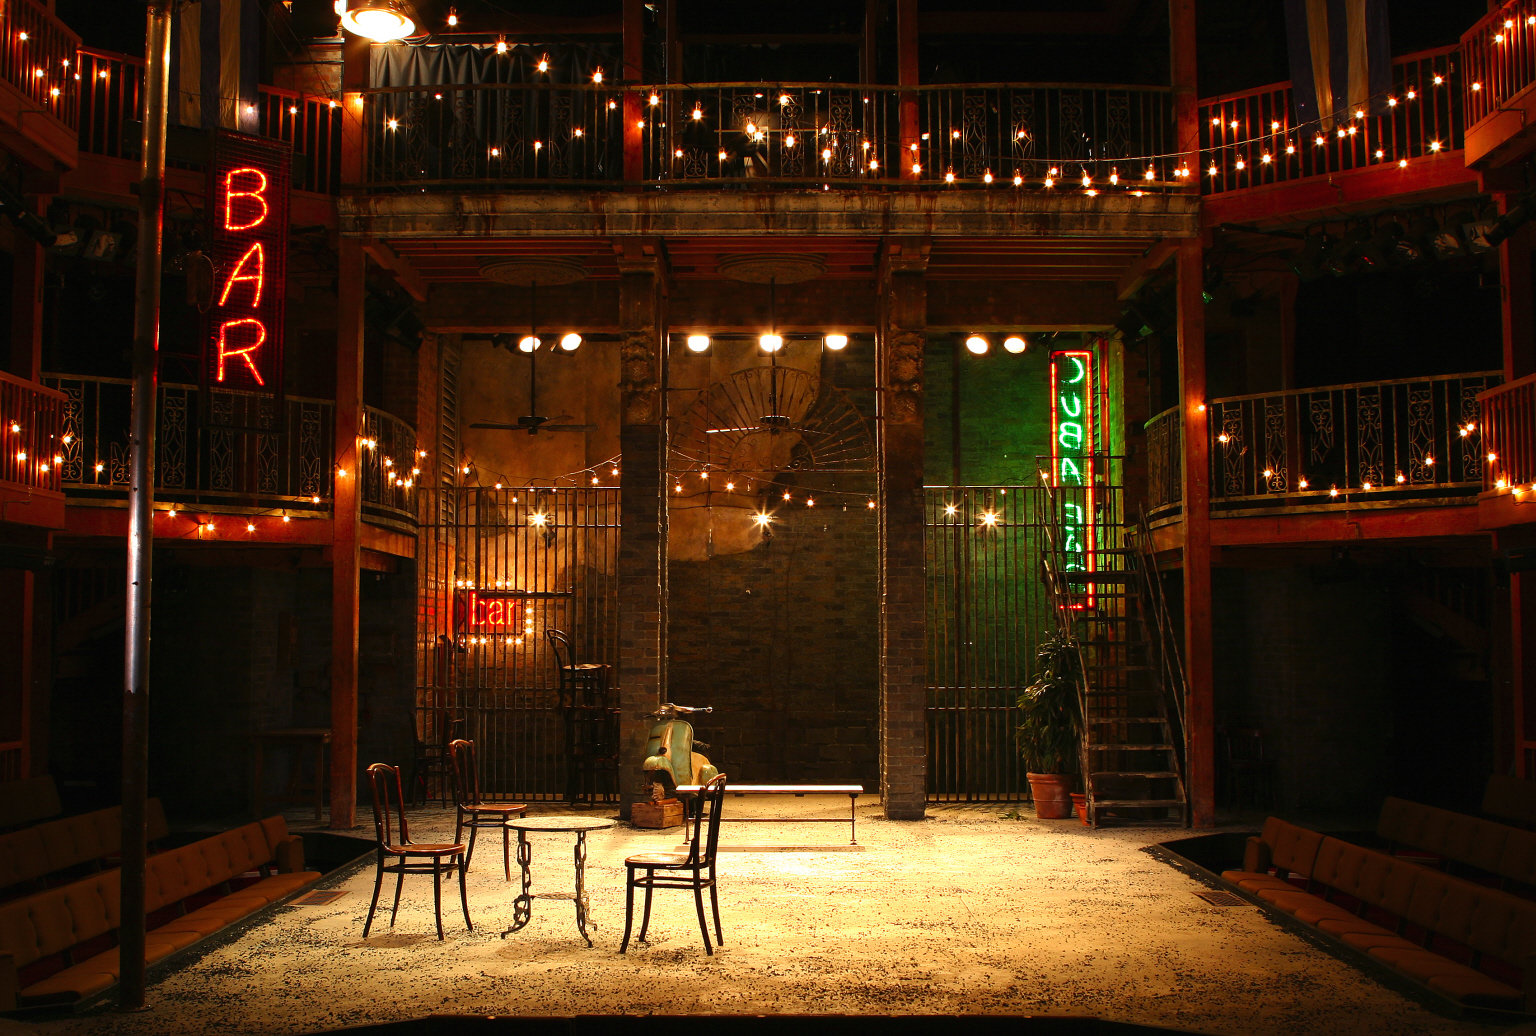 A stage set with a table and some chairs, with lights around the balcony.